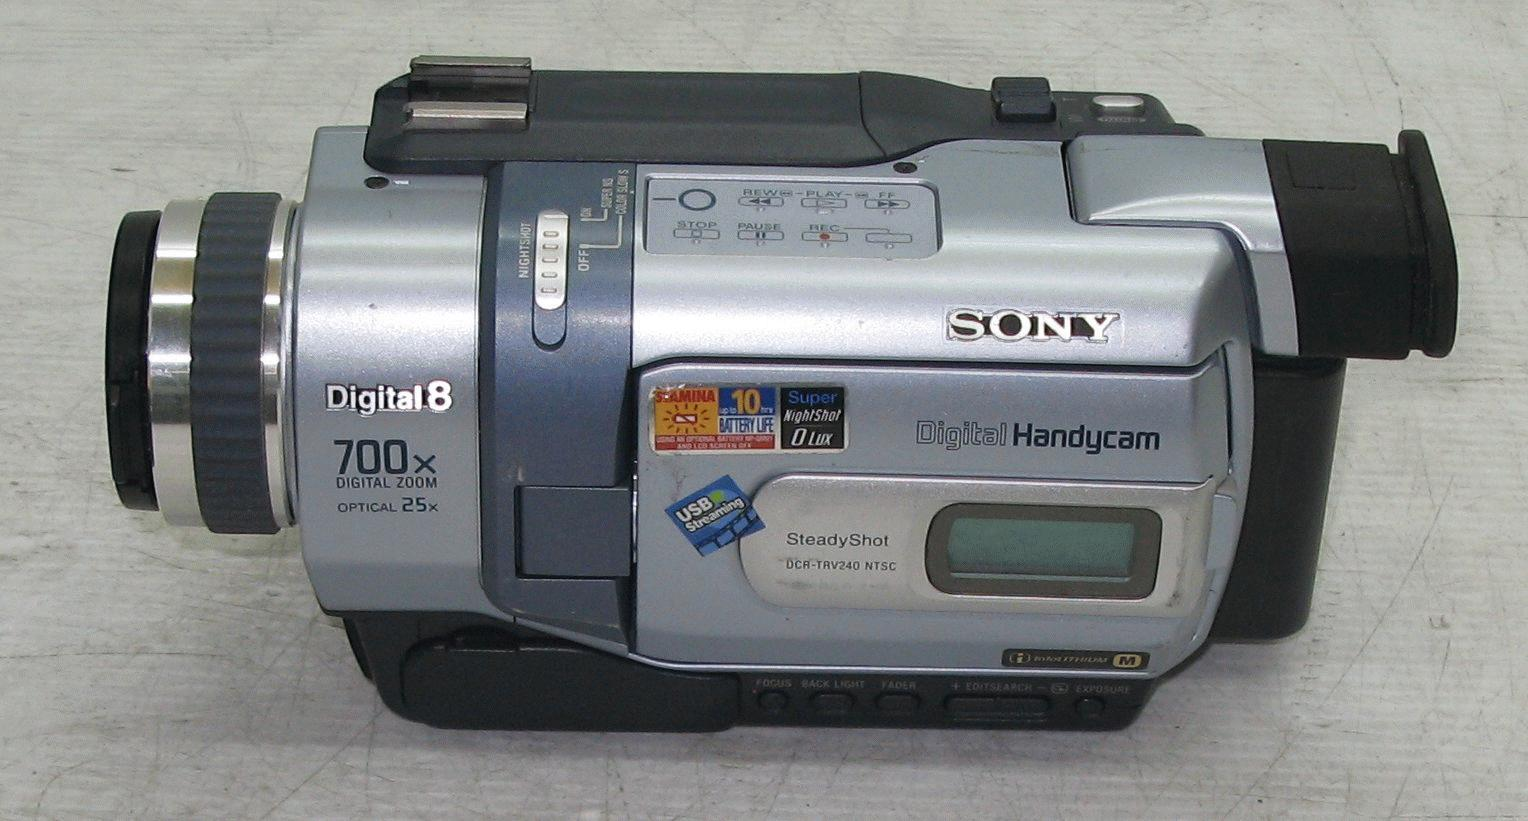 sony digital handycam digital 8 700x zoom manual